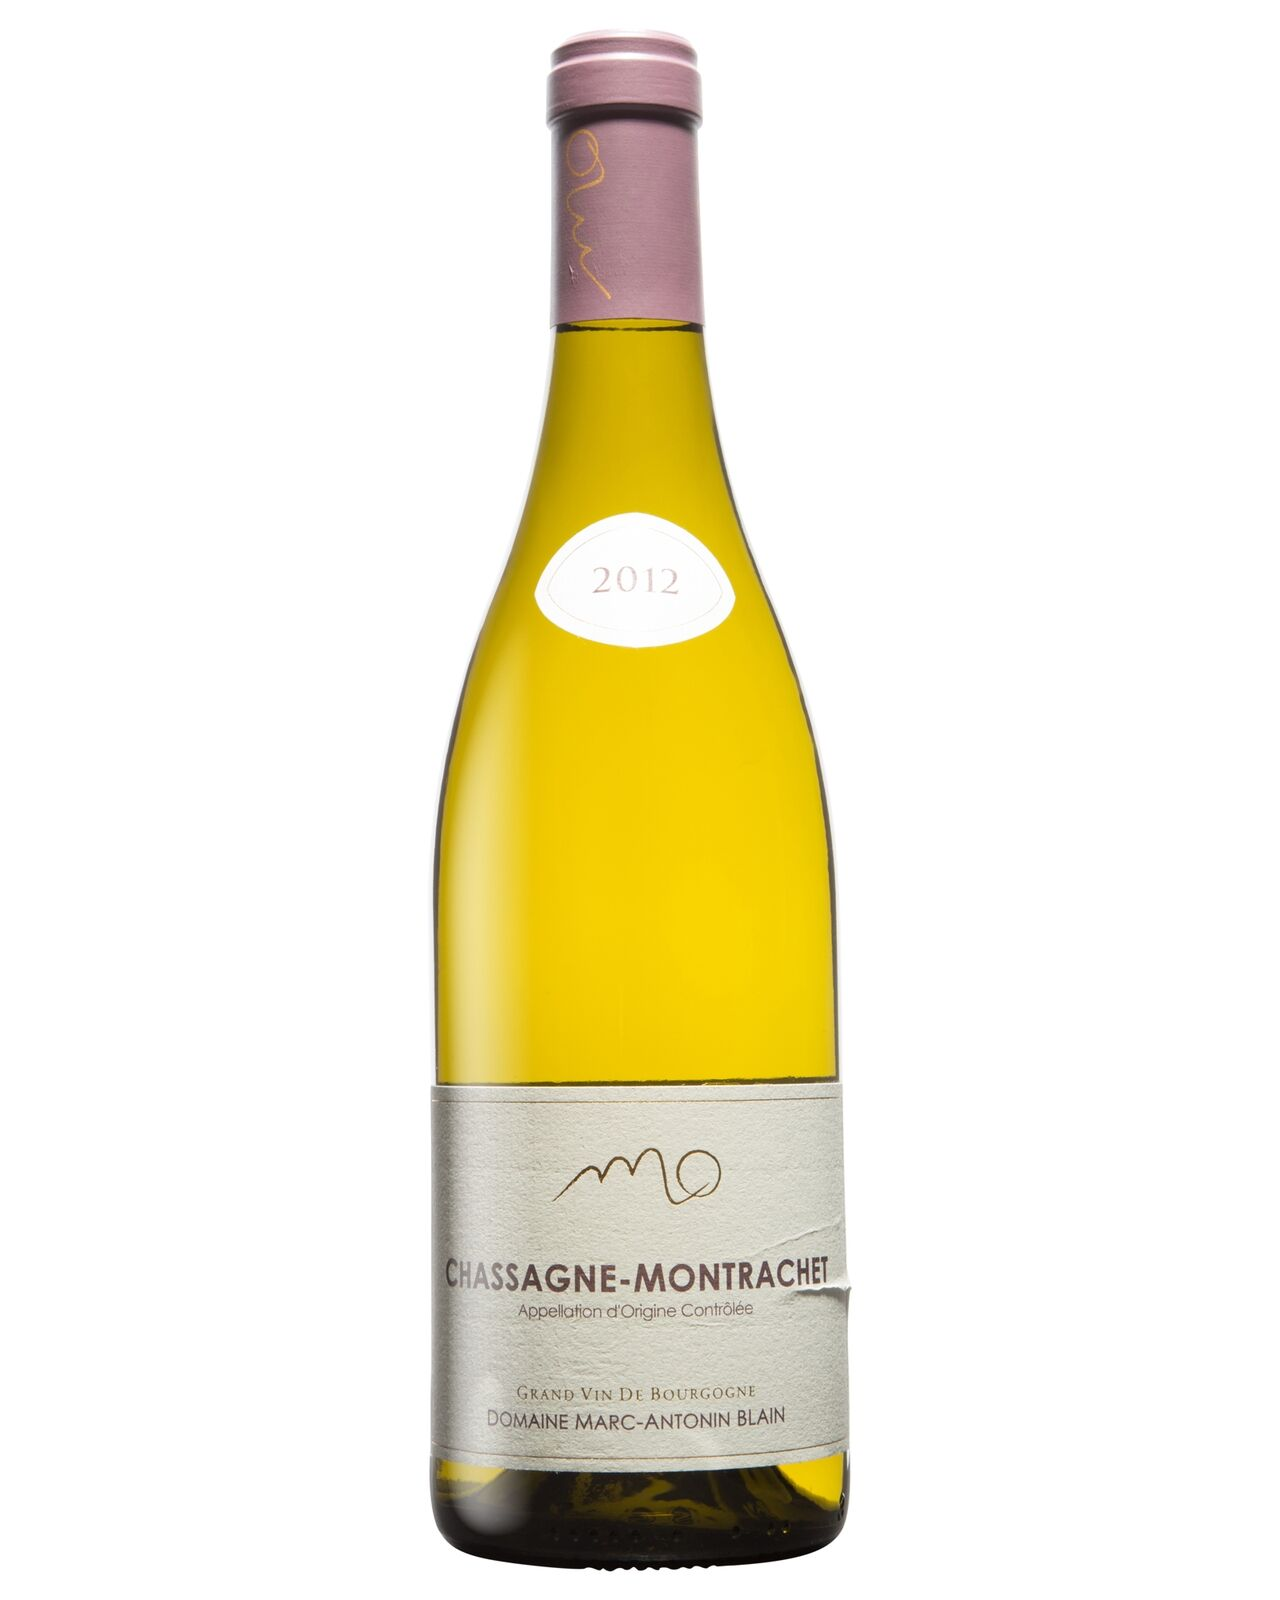 Domain Marc-Antonin Blain Chassagne Montrachet rouge 2012 bottle Pinot Noir Wine